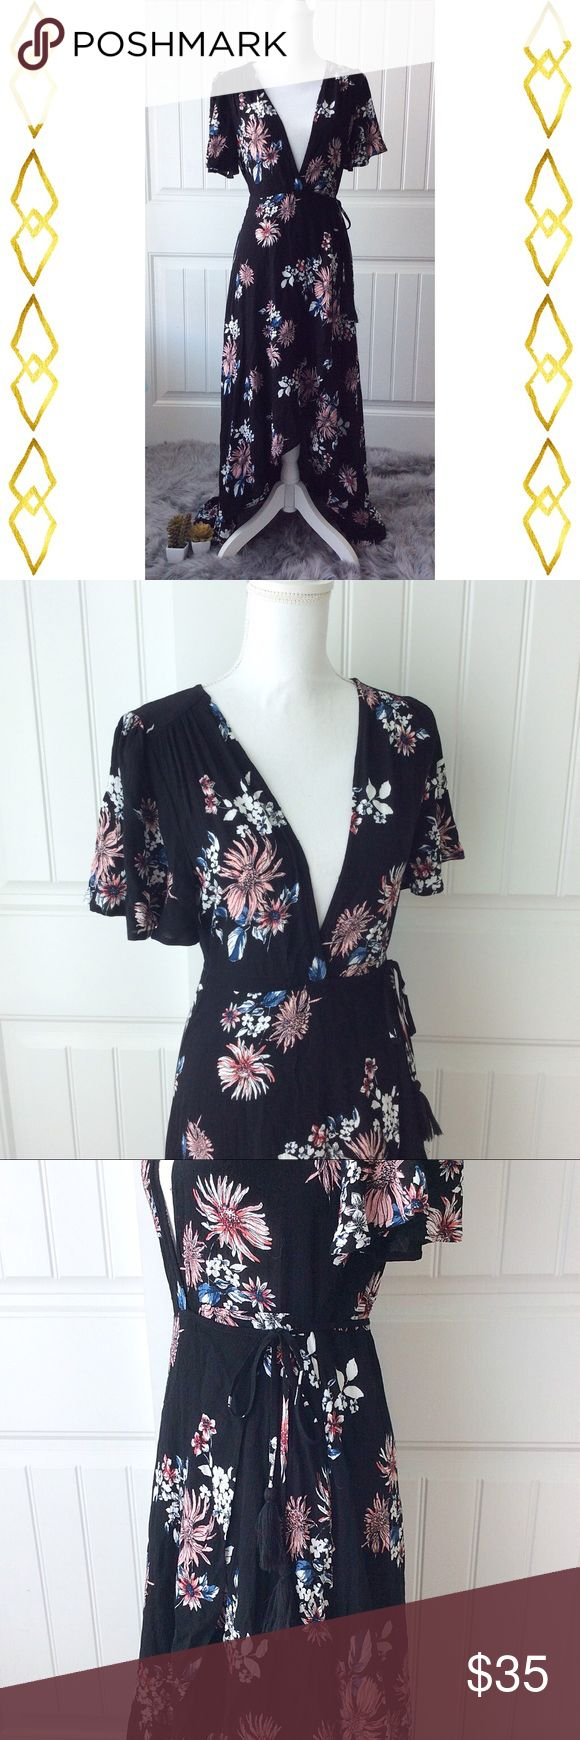 Floral Wrap Dress Soft and romantic floral wrap dress by Cotton Candy LA.  Dreamy florals play up the romance of this waist defining wrap dress set a flutter with a flowy hi-lo hemline.  Plunging v-neckline.  Gathered at shoulders. Short flutter sleeves.  Wrap front with self tie belt with tasseled ends.  Size is small but fits move like an extra small.  100% rayon. Cotton Candy LA Dresses High Low